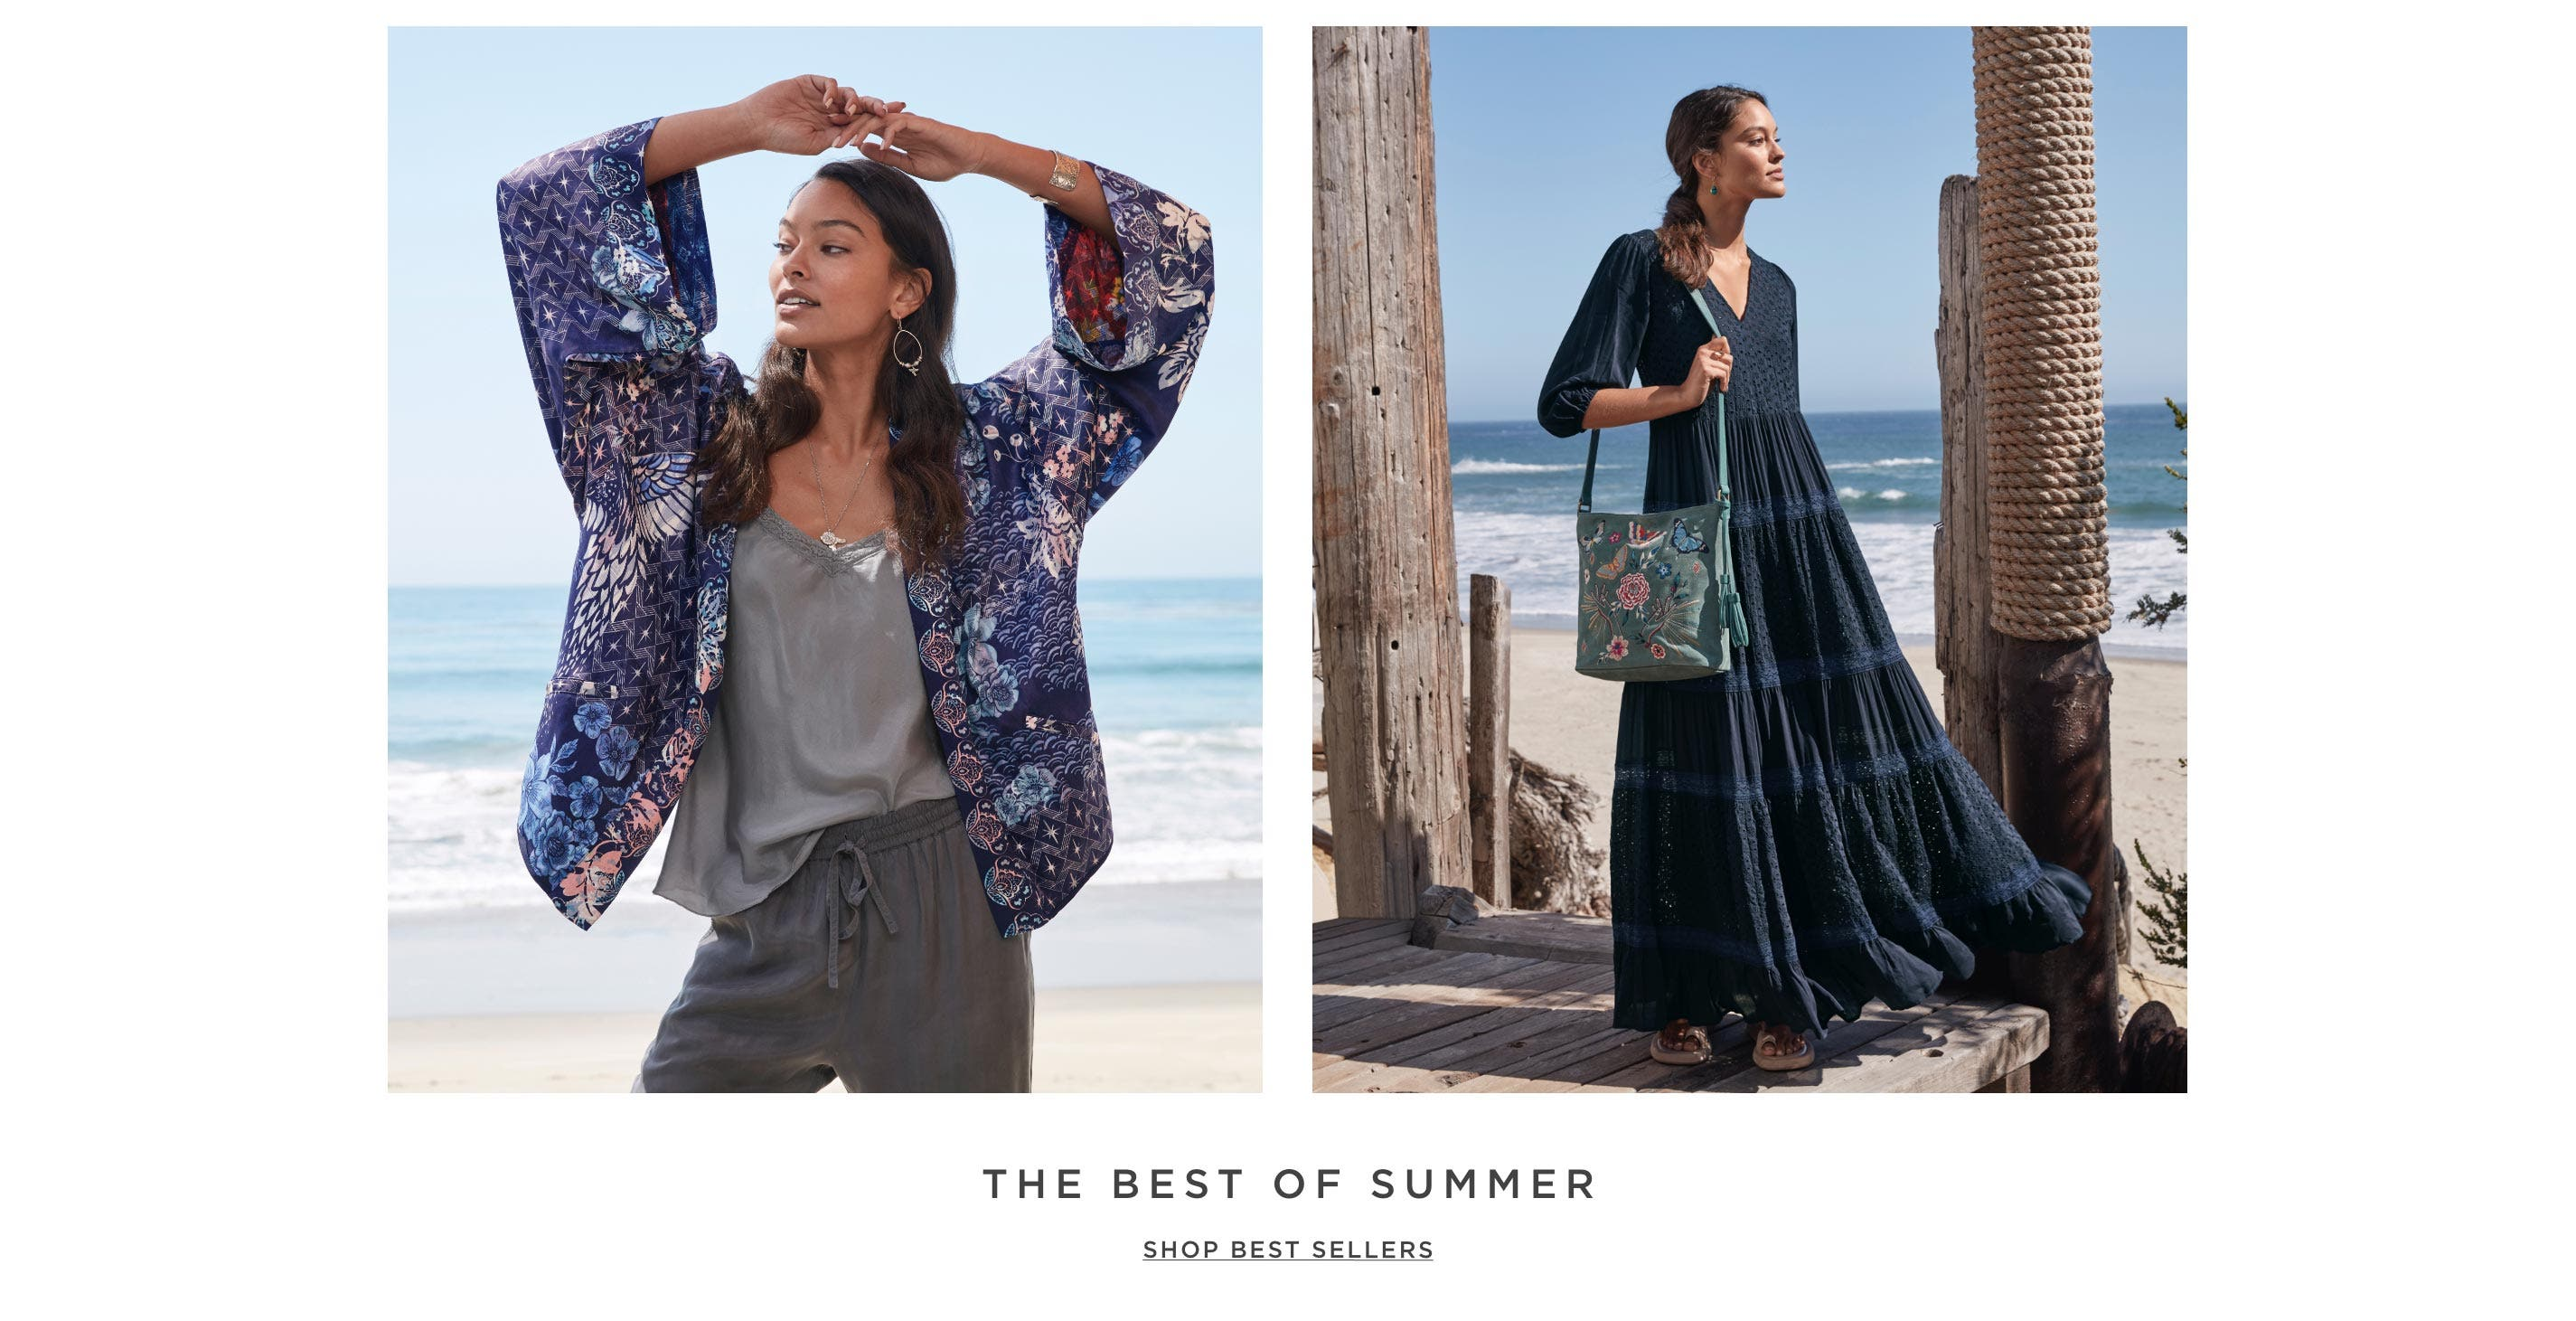 The Best of Summer – Shop Best Sellers